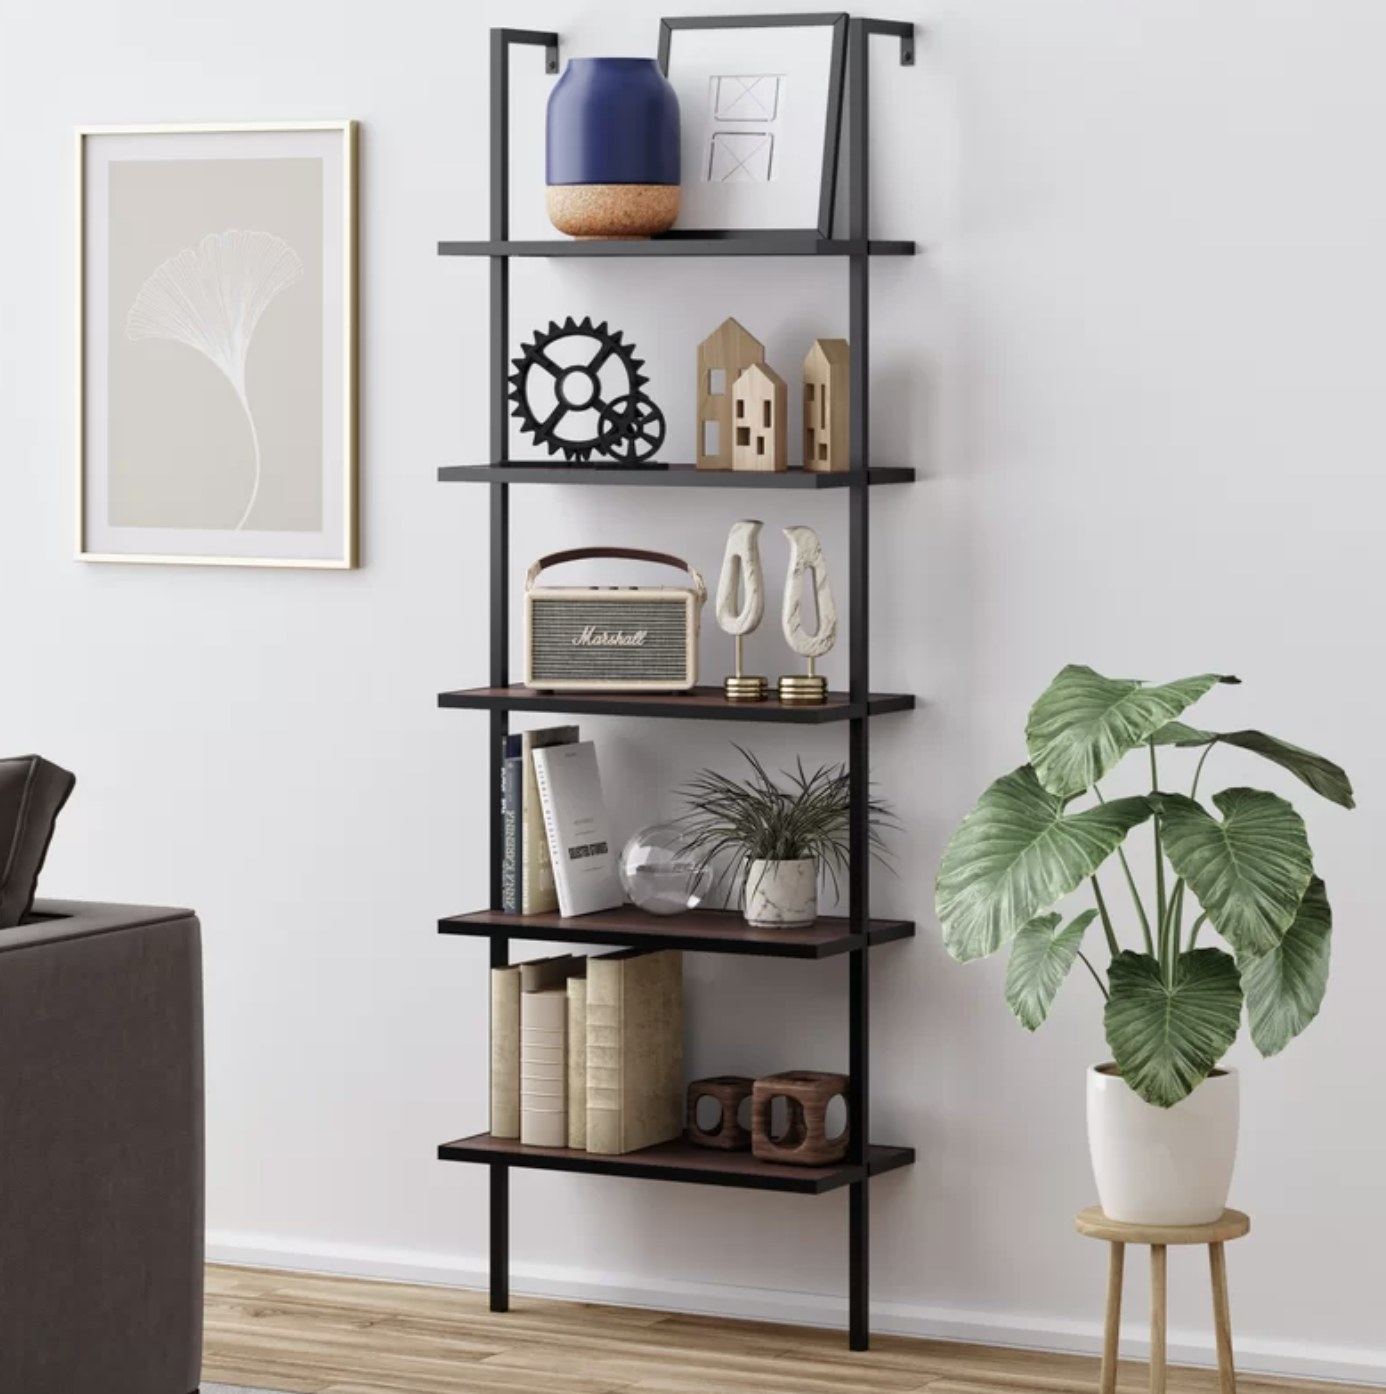 the bookcase in black filled with trinkets and decor